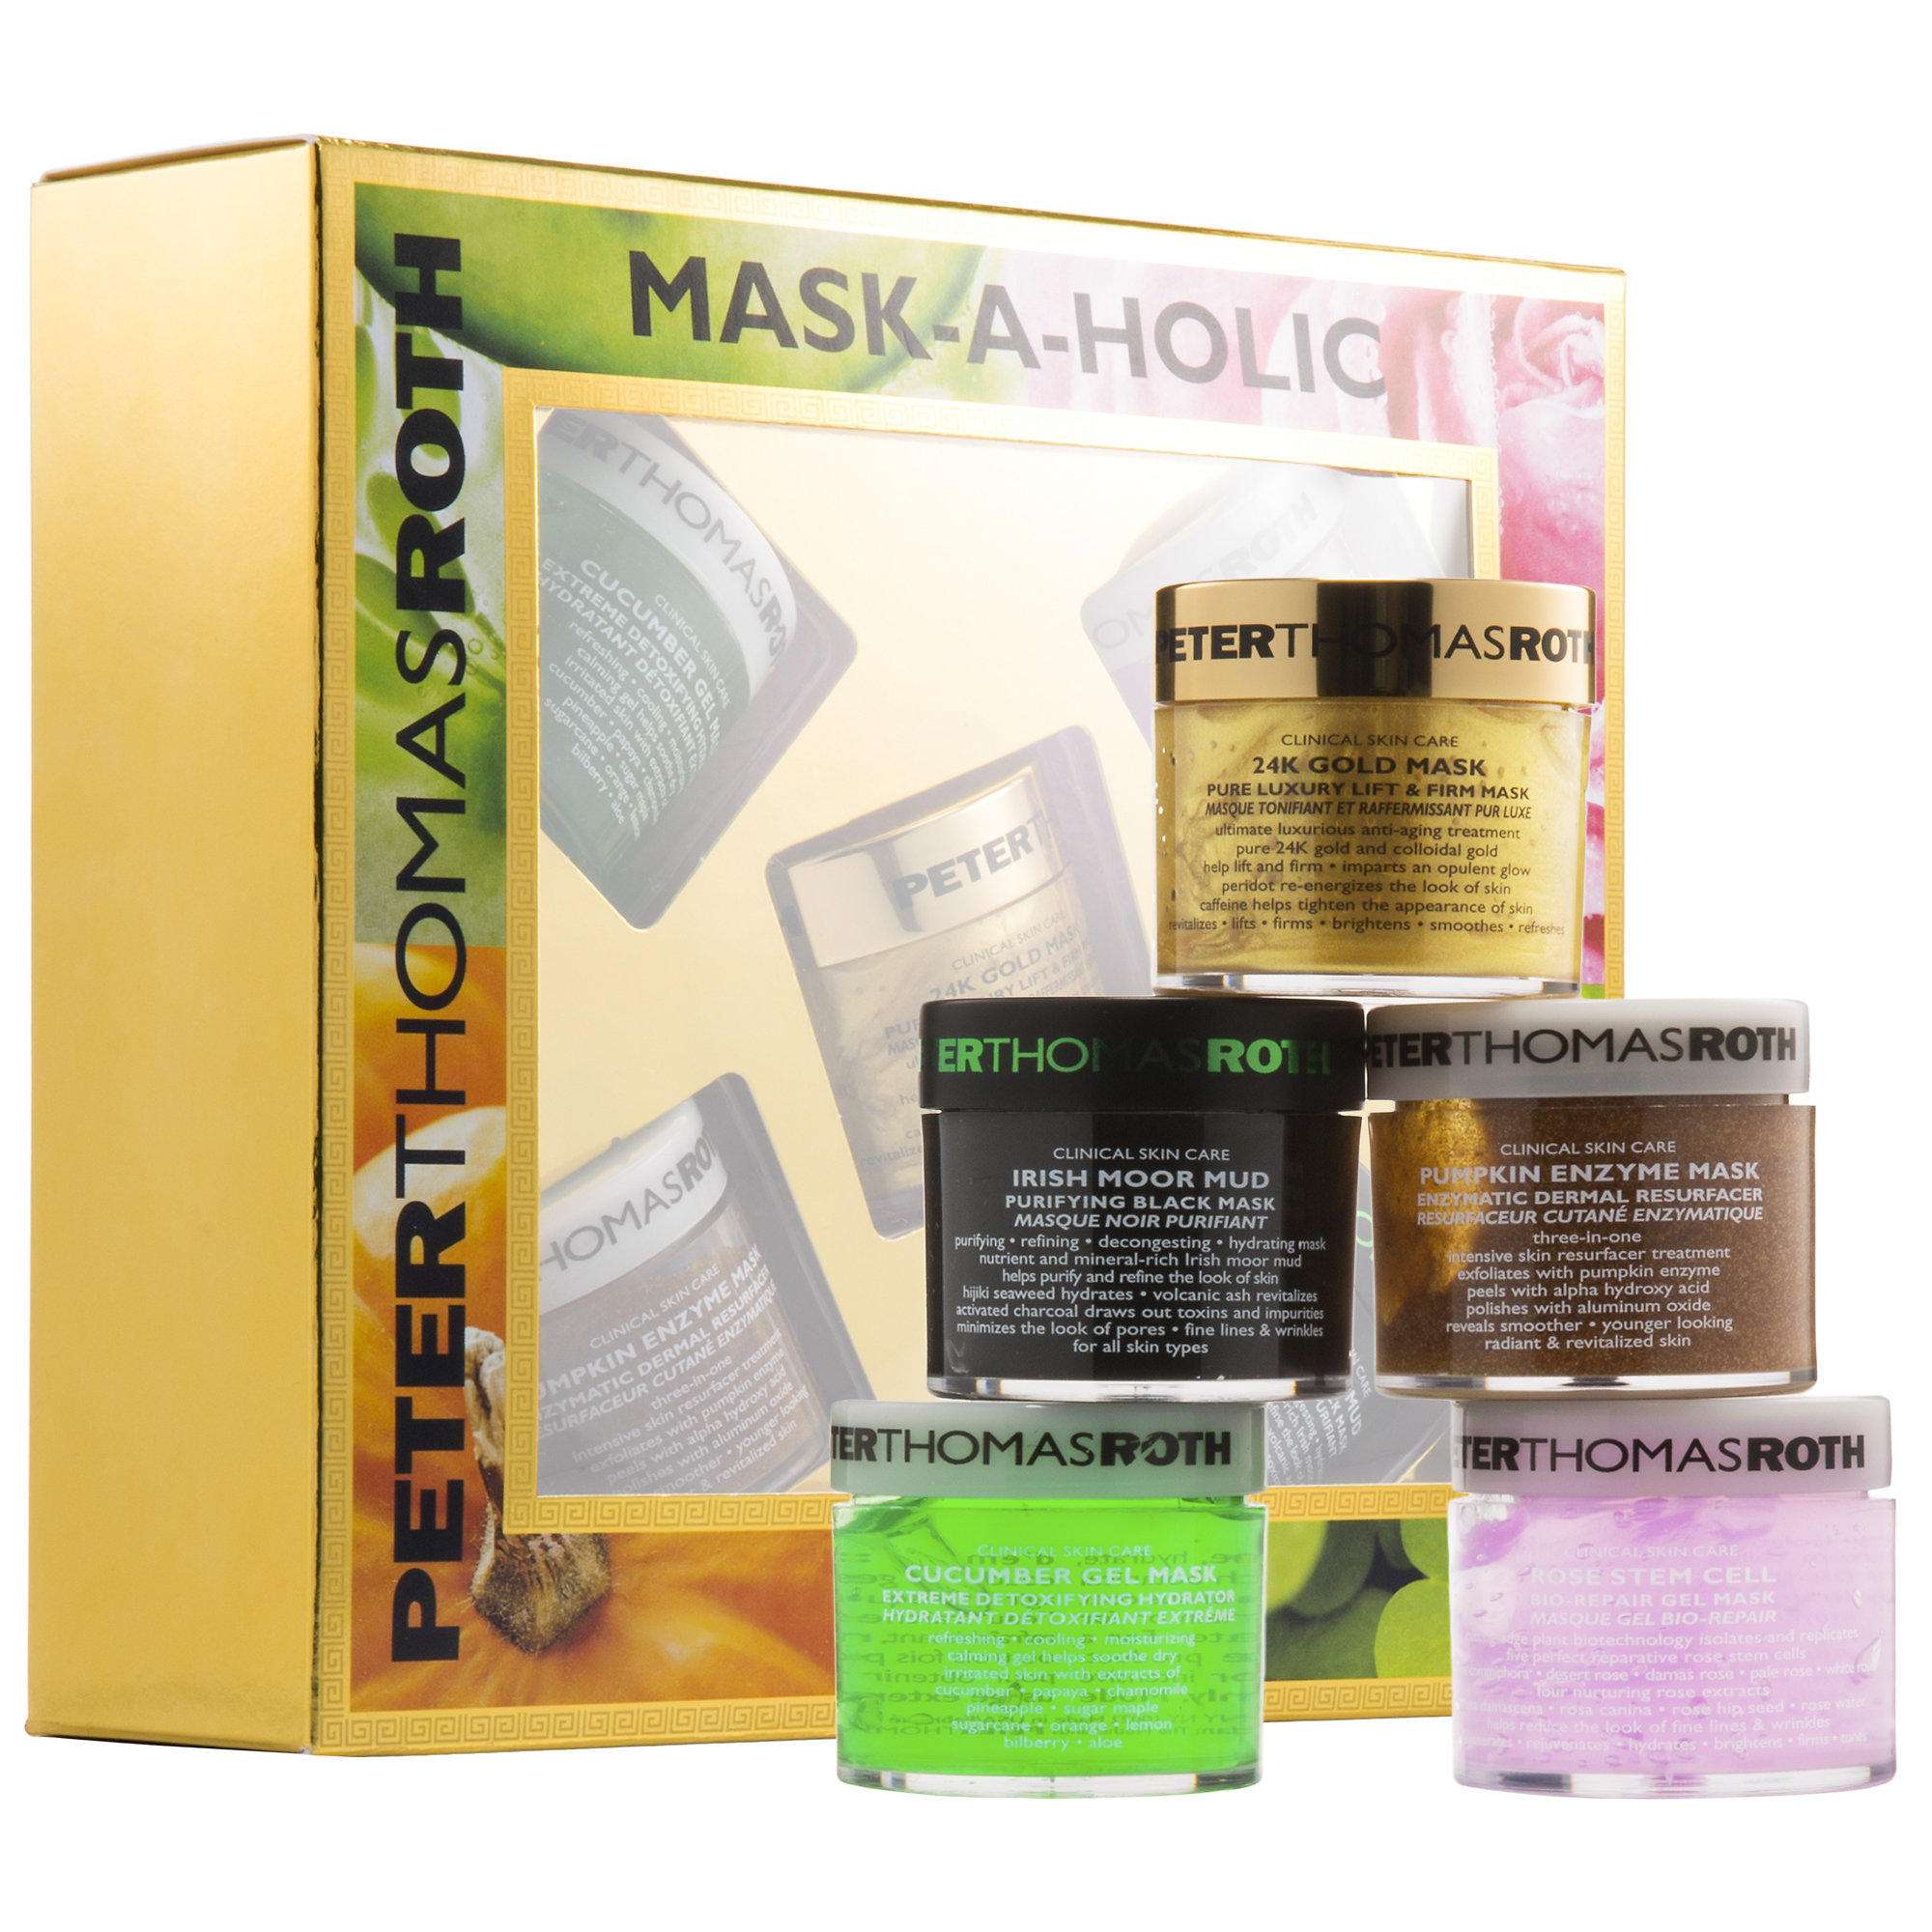 Peter Thomas Roth launched New Mask-A-Holic Kit